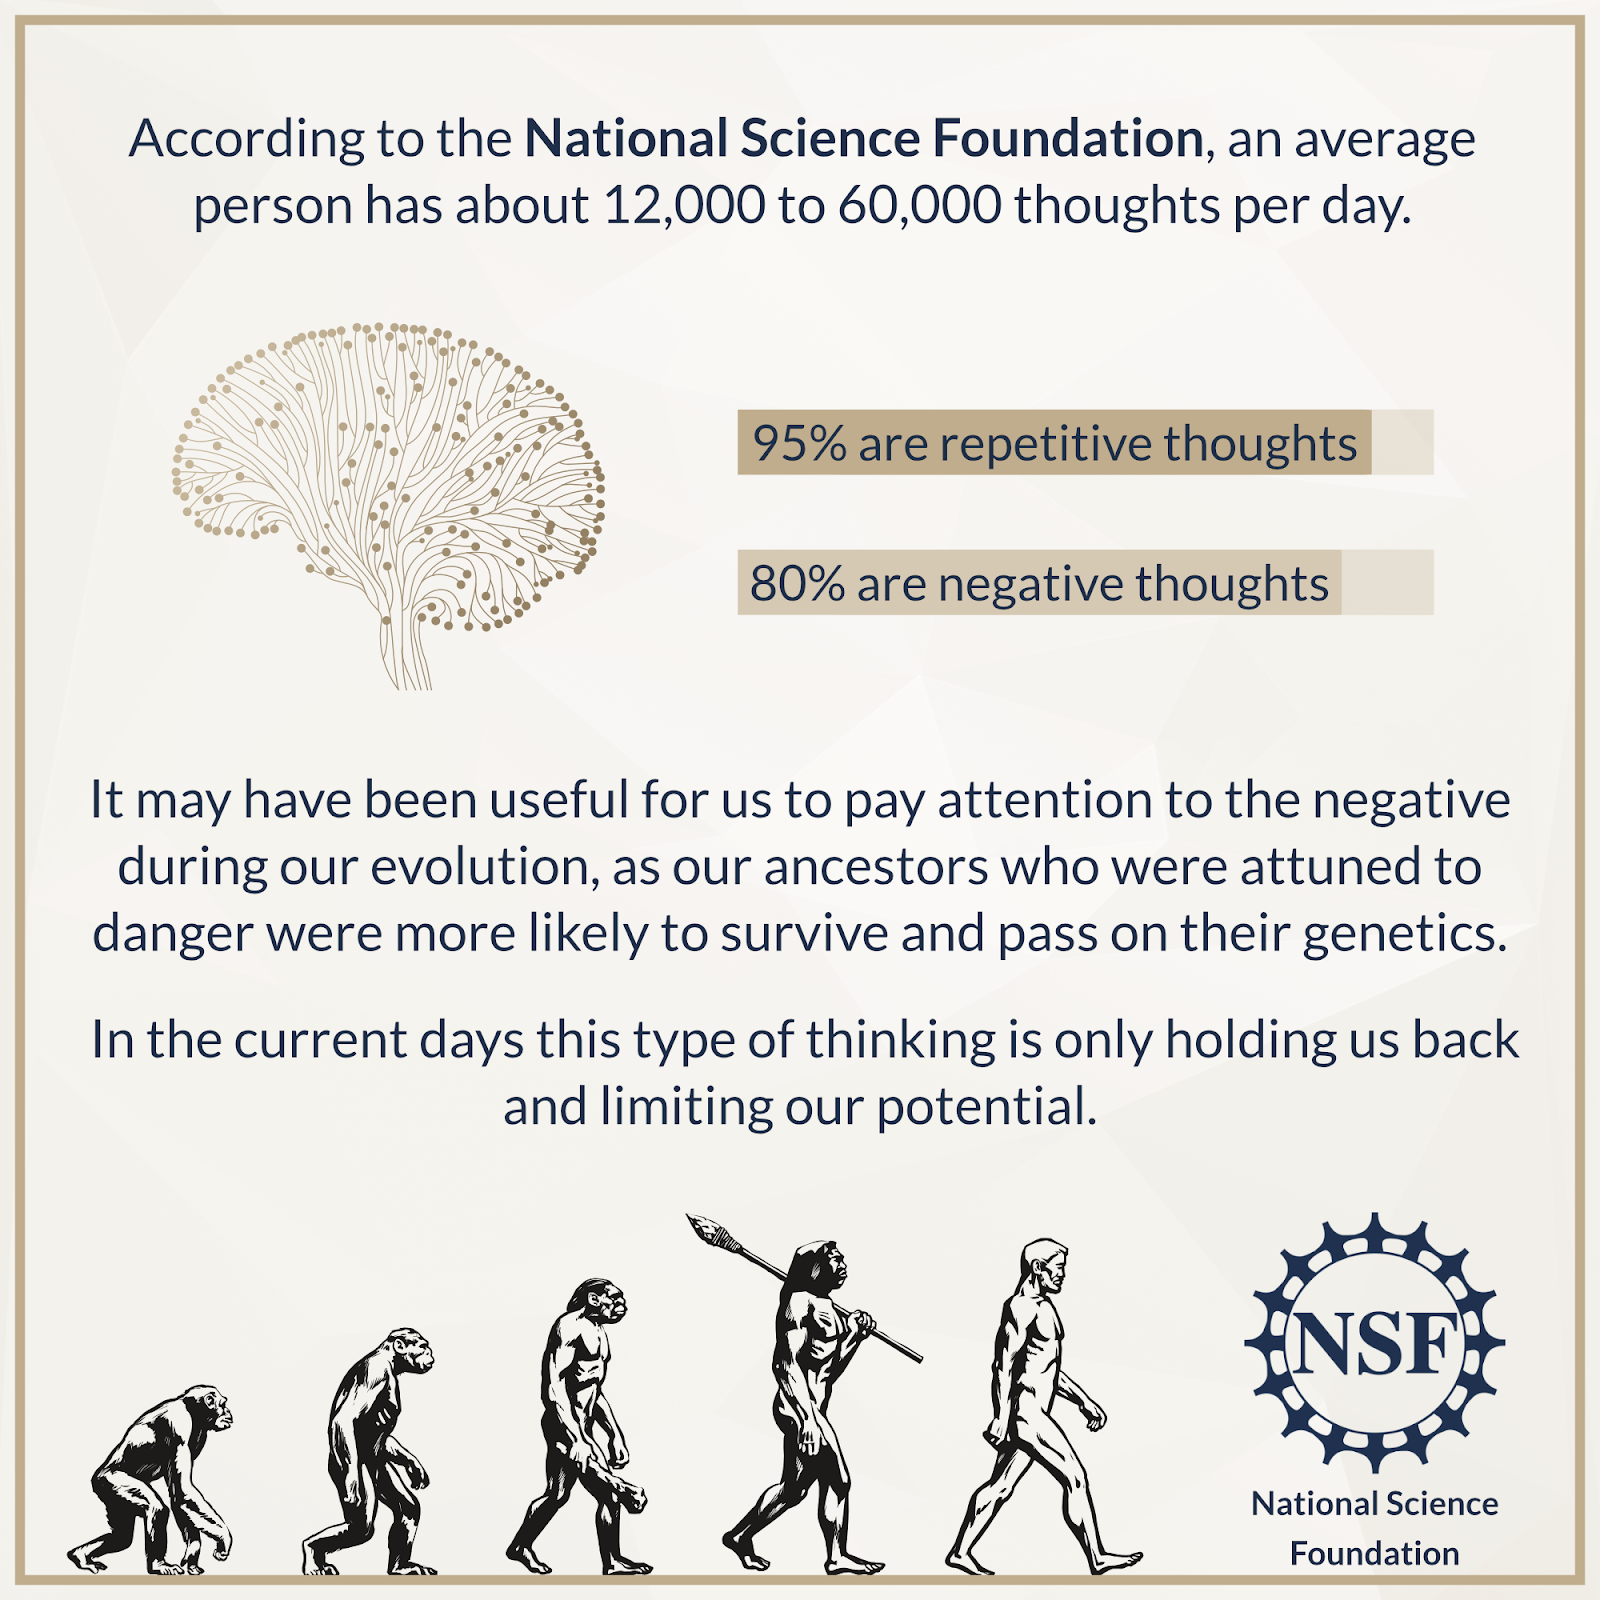 Default Mode Network.National Science Foundation. Behold Retreats, a wellness company that specialises in the therapeutic use of plant-based medicine to aid in personal and spiritual growth. Plant medicine luxury retreat, ayahuasca, psychedelics, psilocybin, 5-meo DMT.